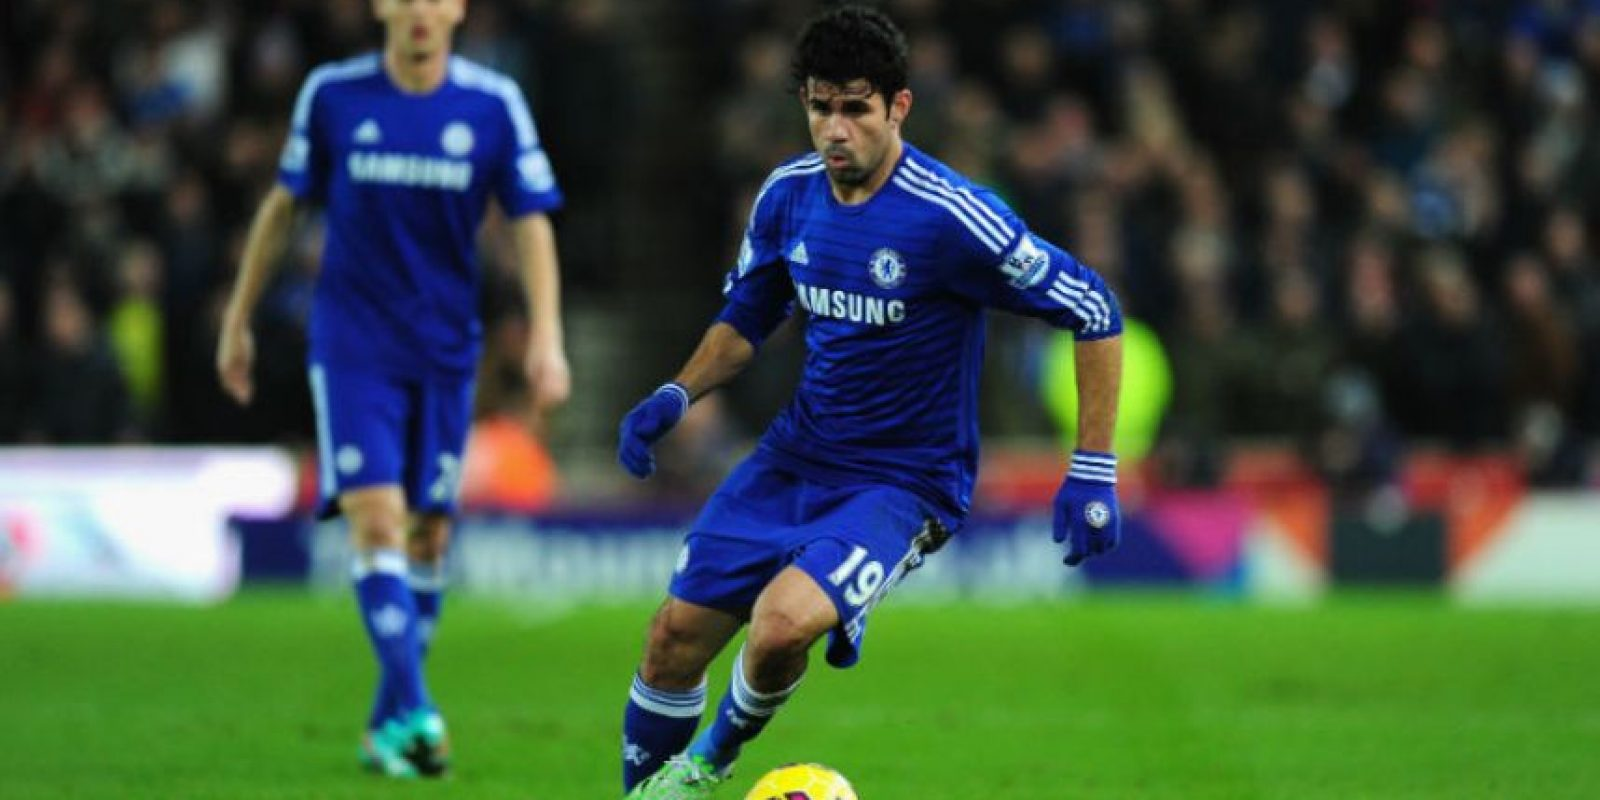 Diego Costa Foto:Getty Images